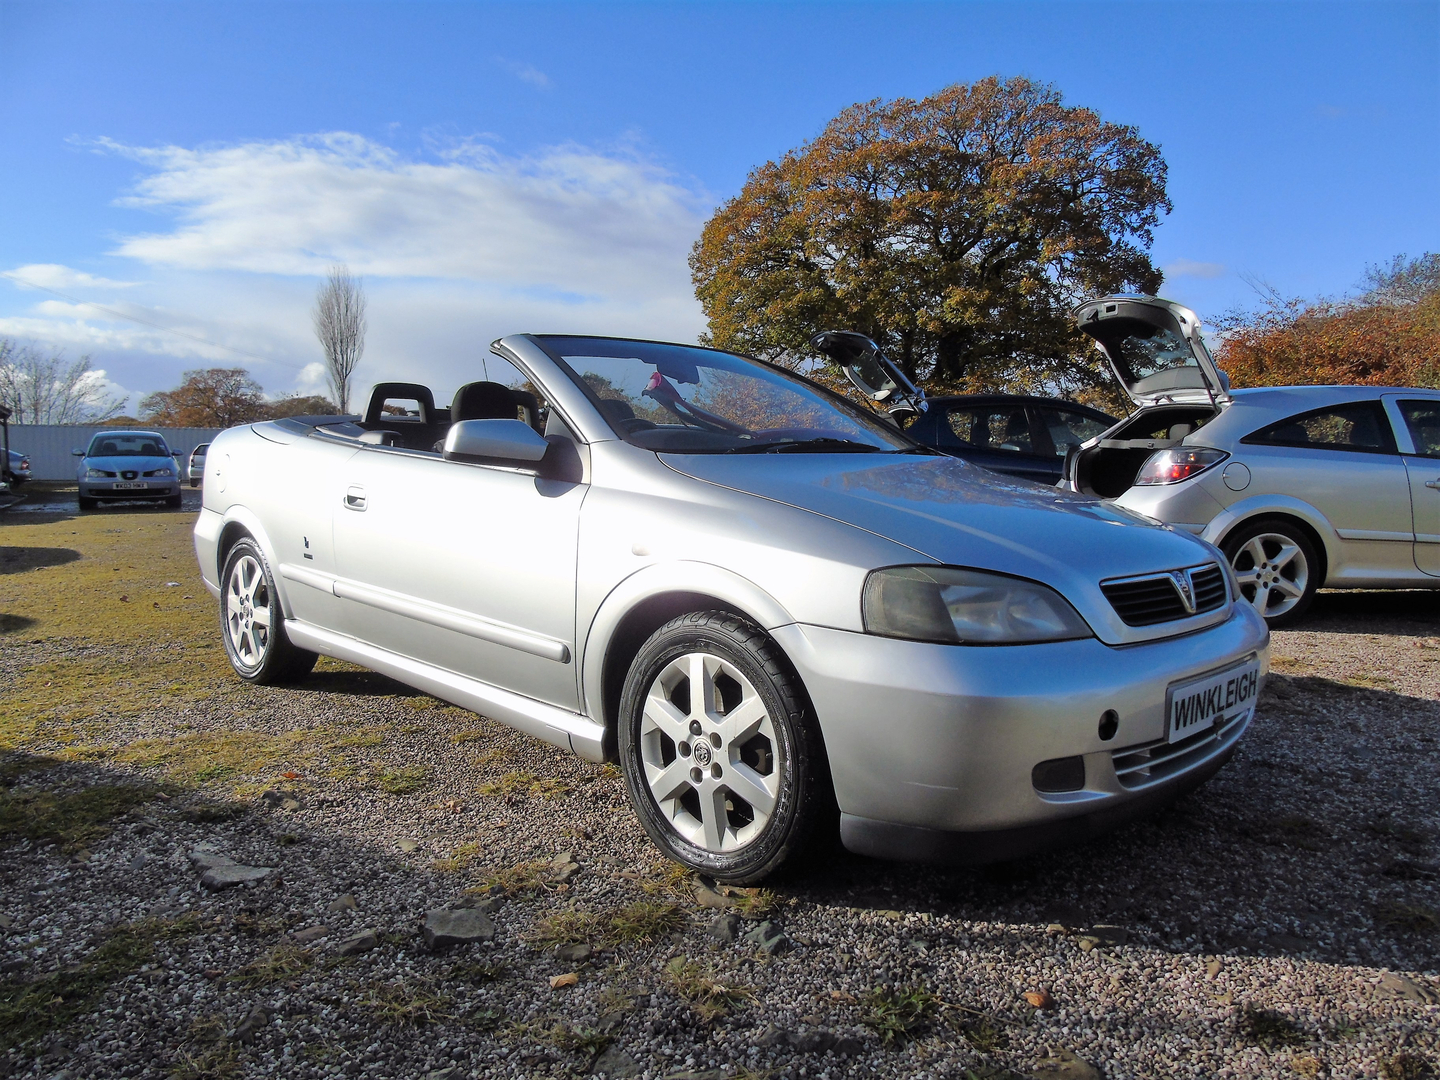 2003 vauxhall astra coupe convertible petrol manaul 1 8 ebay. Black Bedroom Furniture Sets. Home Design Ideas